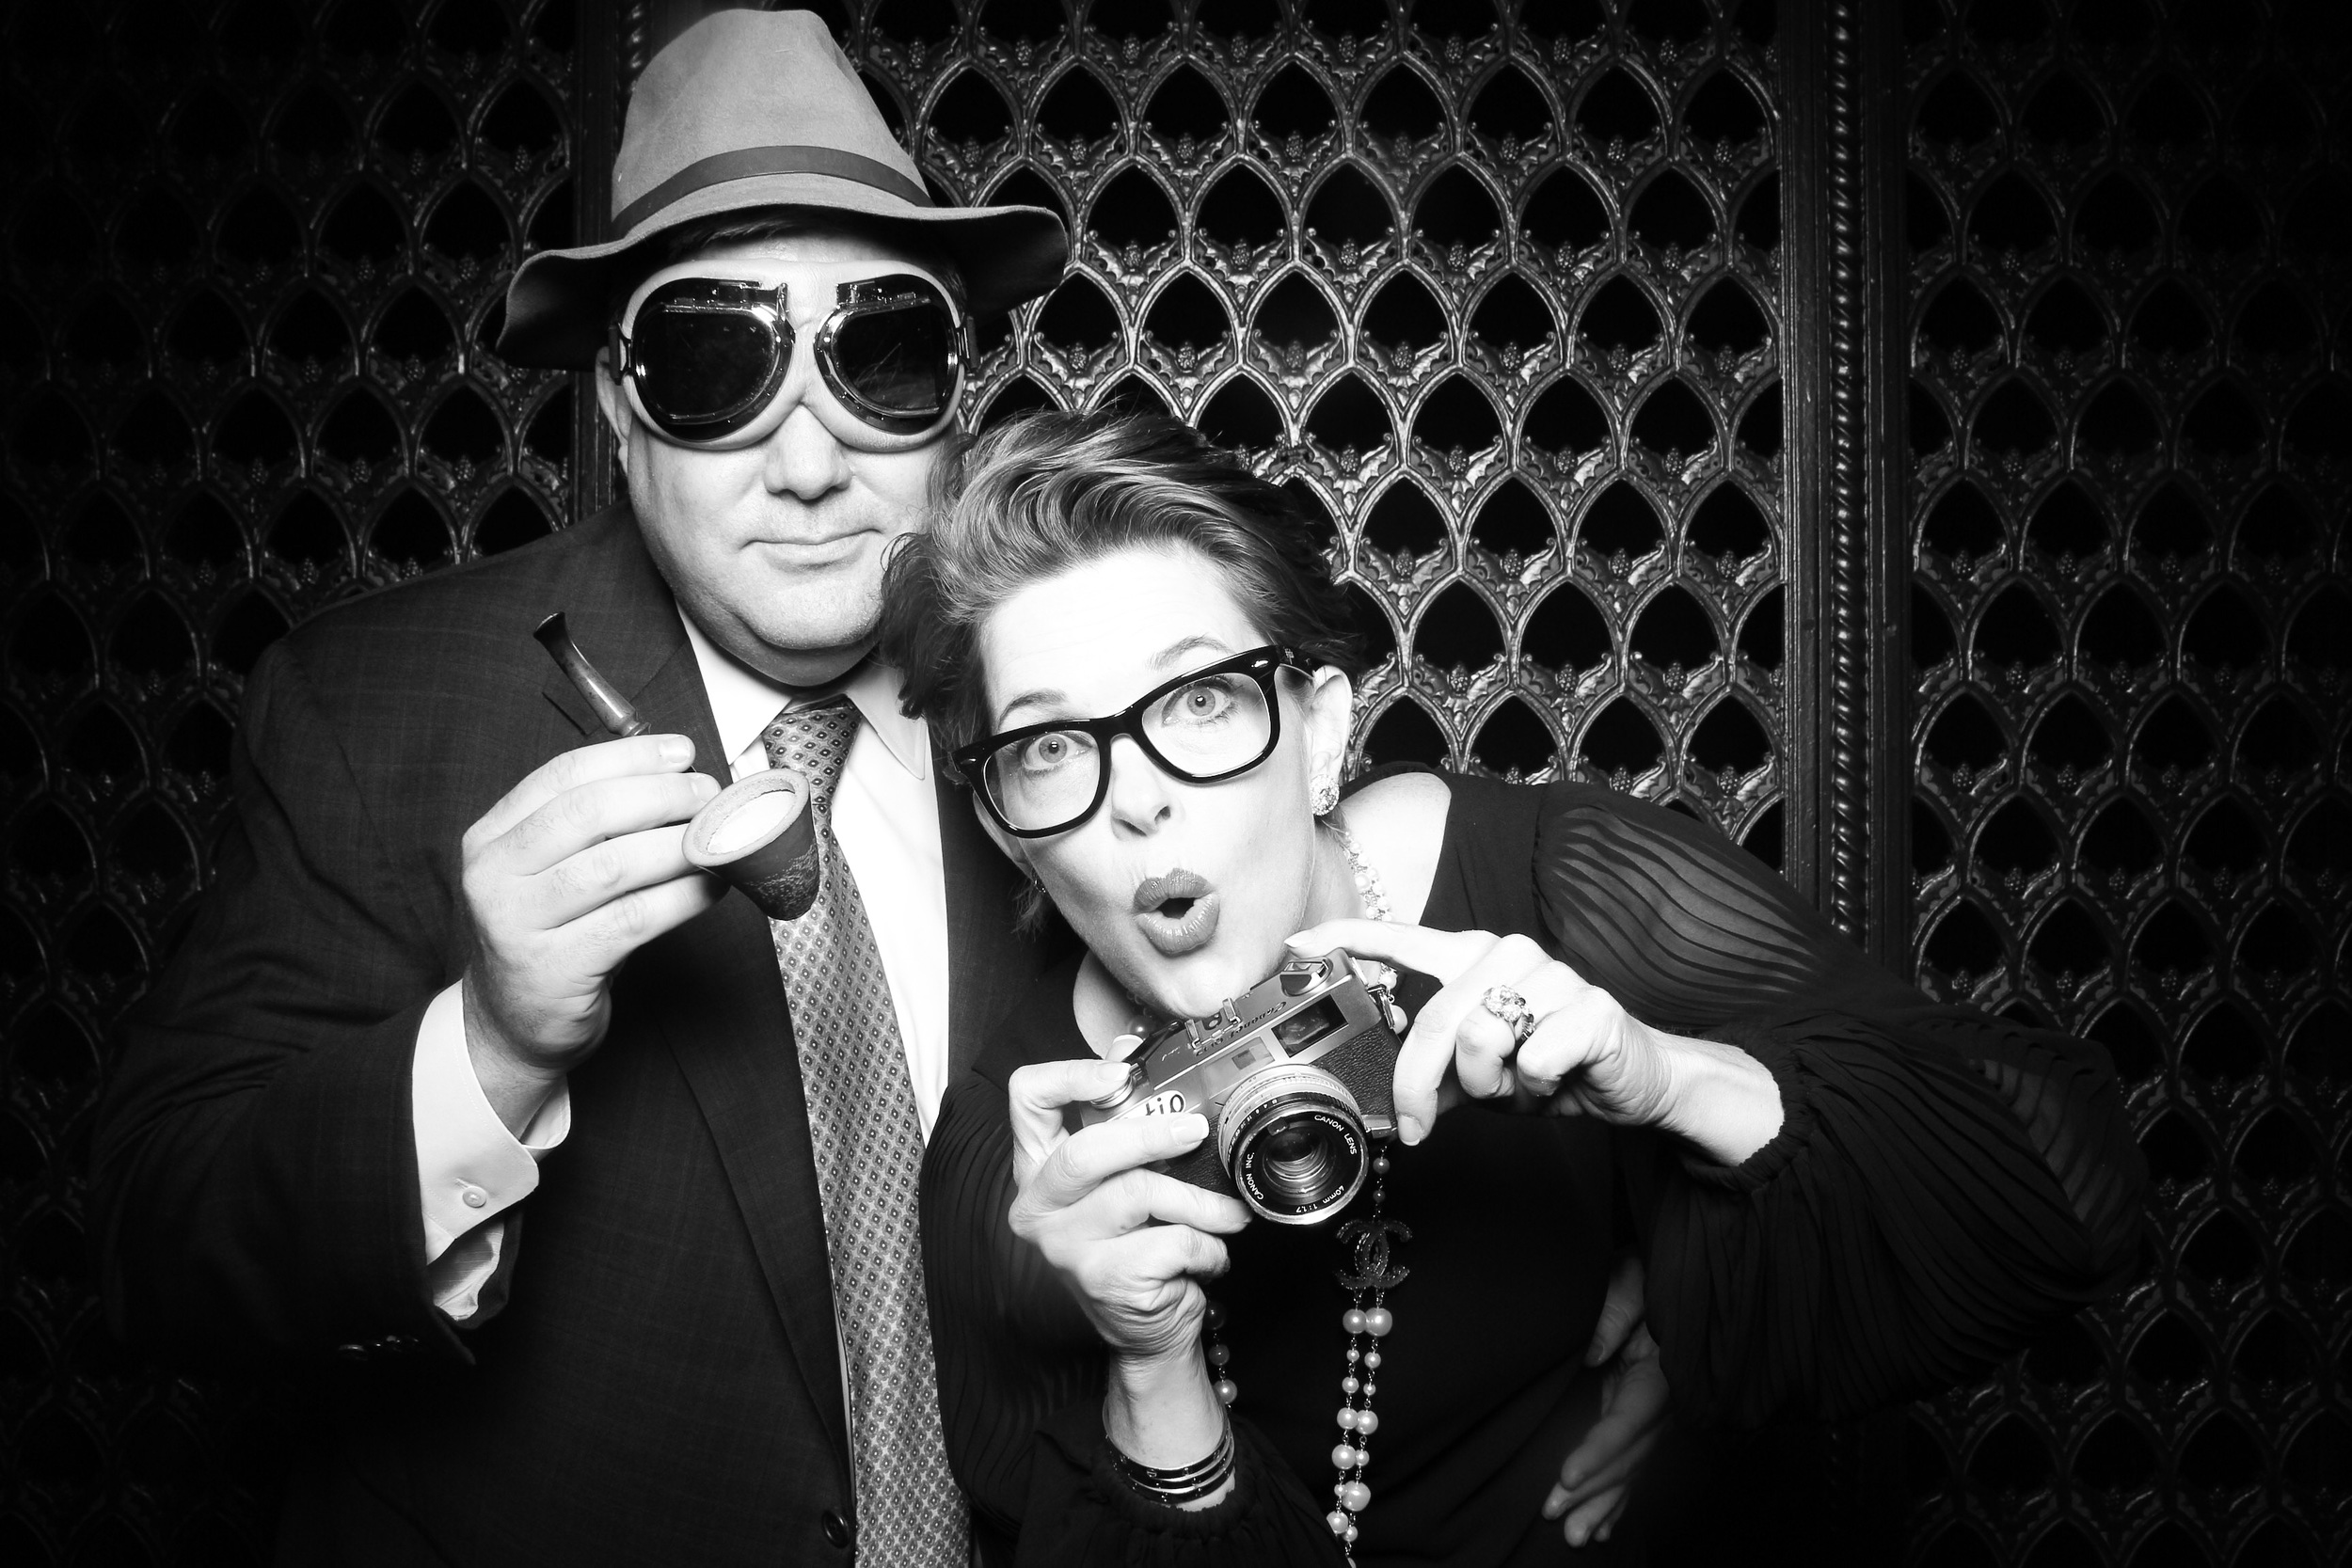 Guests having some photo booth fun with vintage props at Chicago's Union Station!